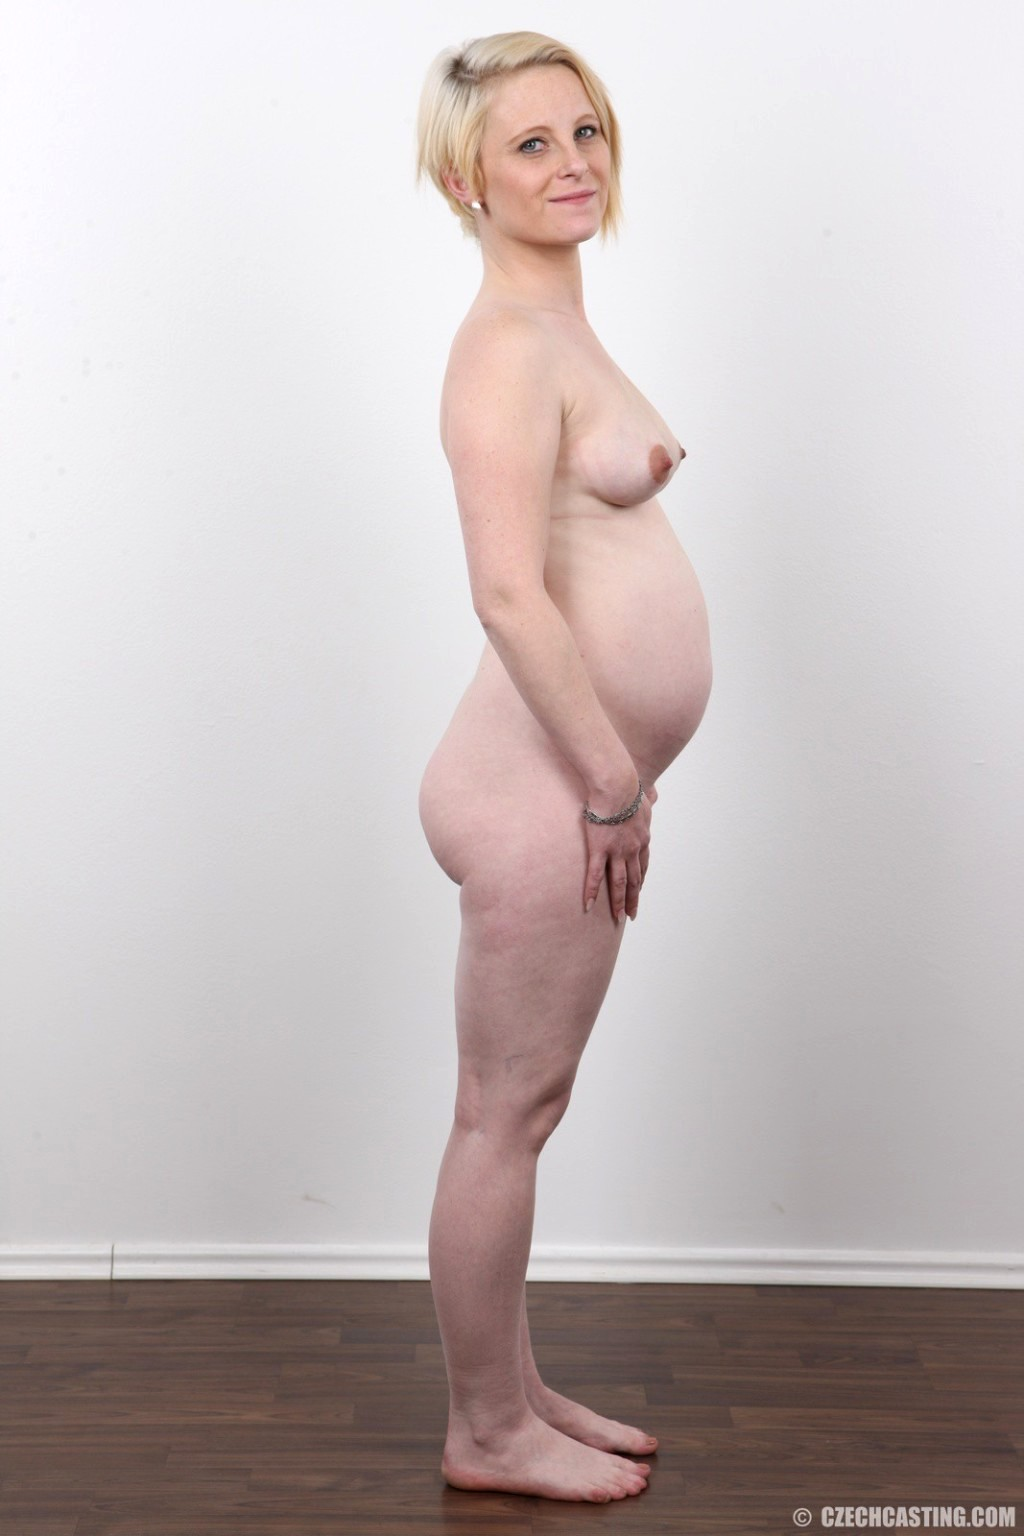 Married milf mona wales innocent girl turned slut - 3 part 1